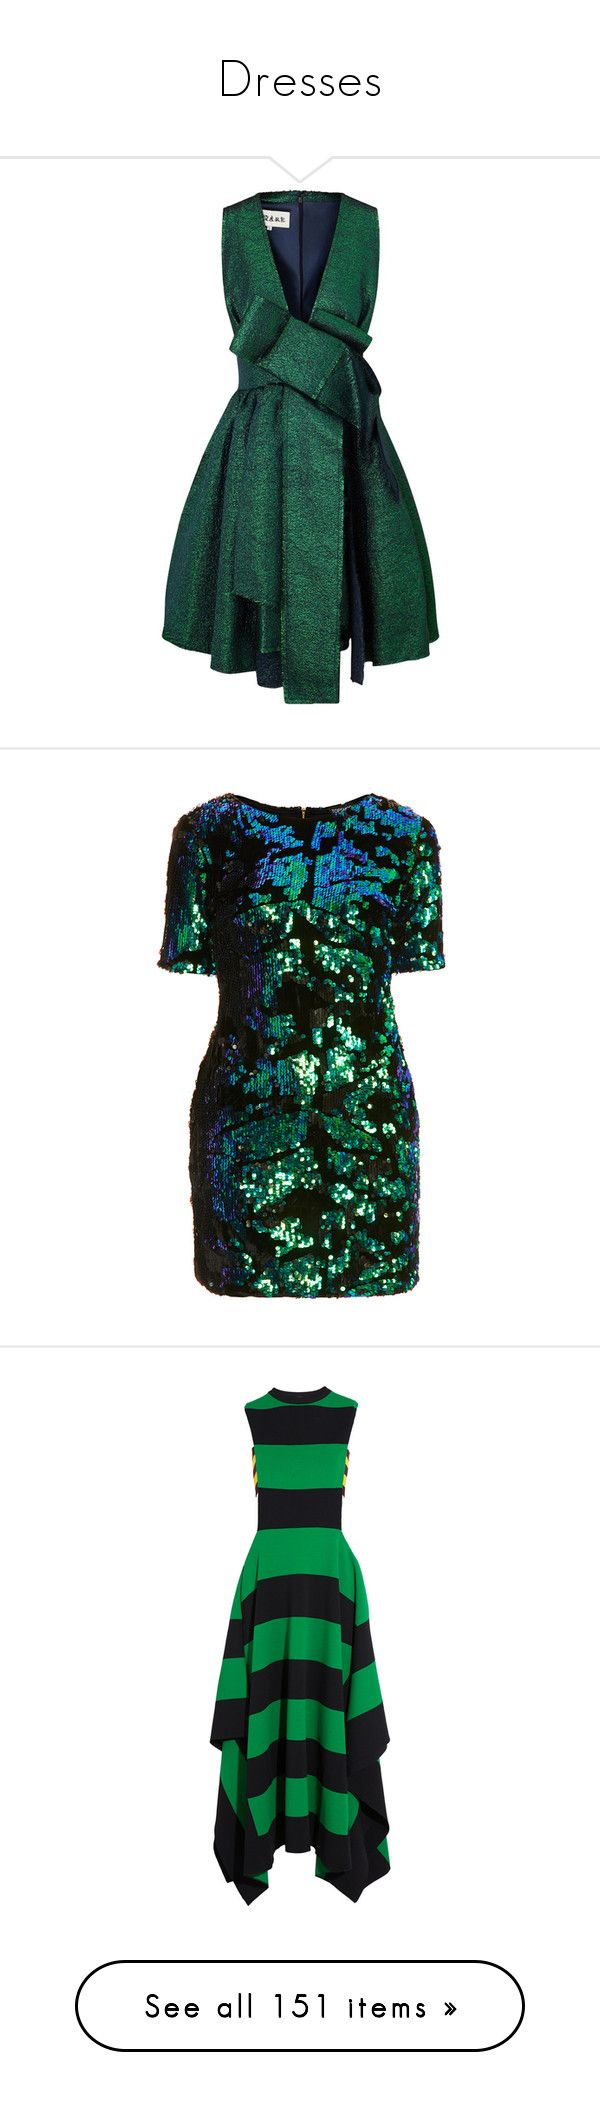 """Dresses"" by kitti-takacs ❤ liked on Polyvore featuring dresses, short dresses, vestidos, green, sparkly mini dress, sparkly cocktail dresses, metallic cocktail dress, sparkly dresses, topshop and multi"